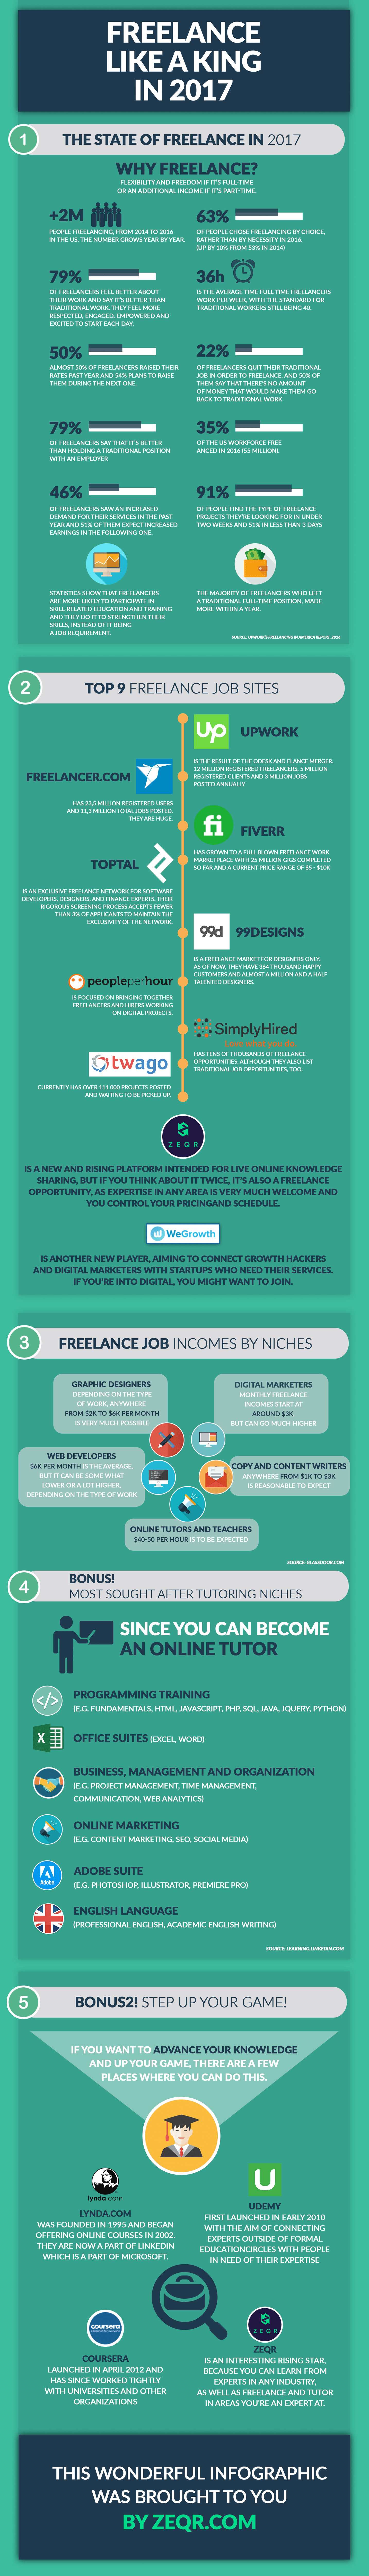 The State of Freelancing (Infographic)